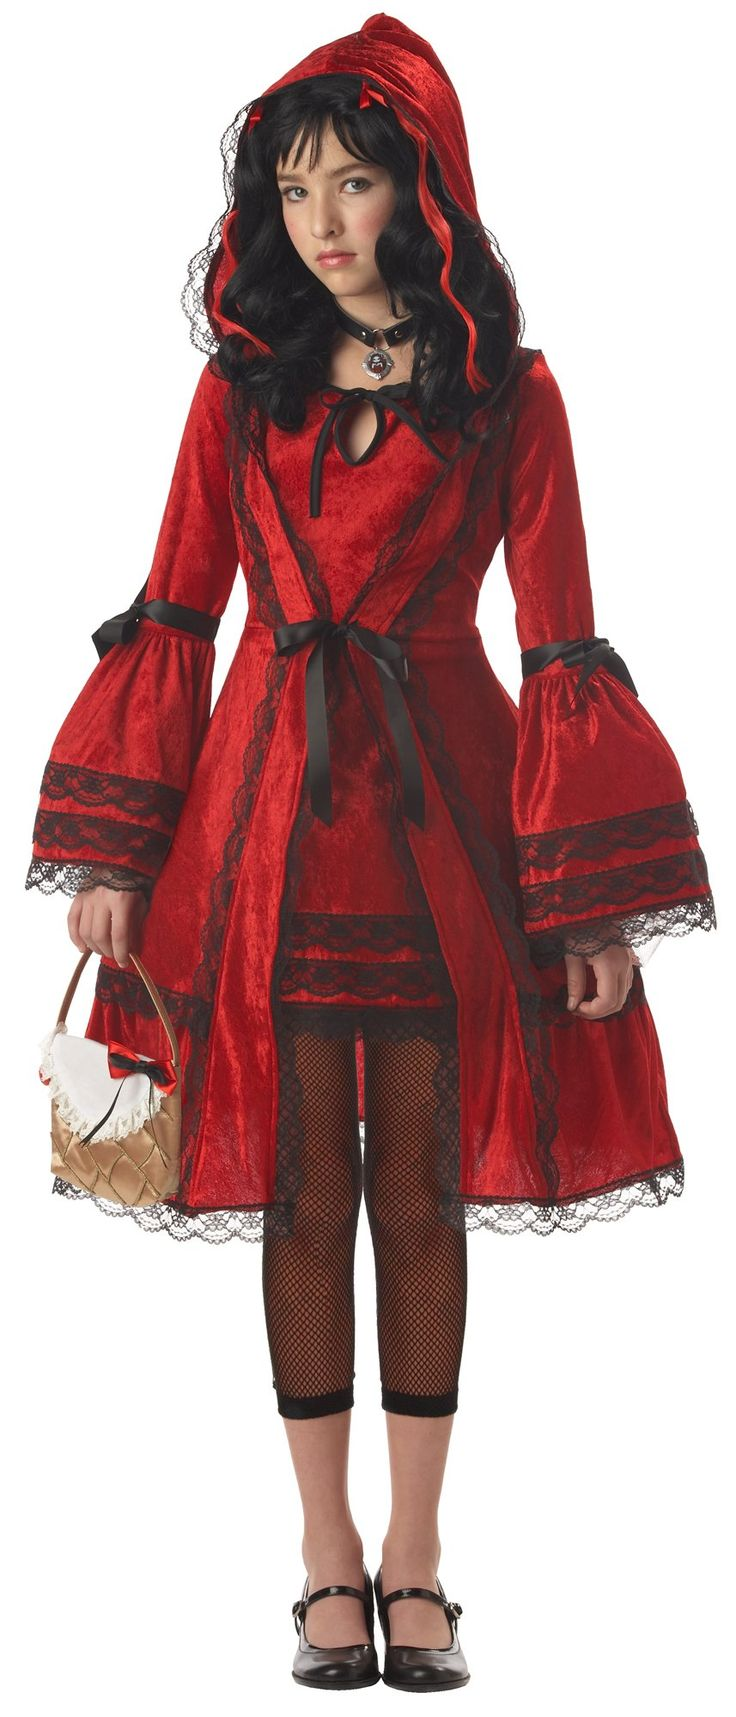 Red Riding Hood Tween Costume from BuyCostumes.com